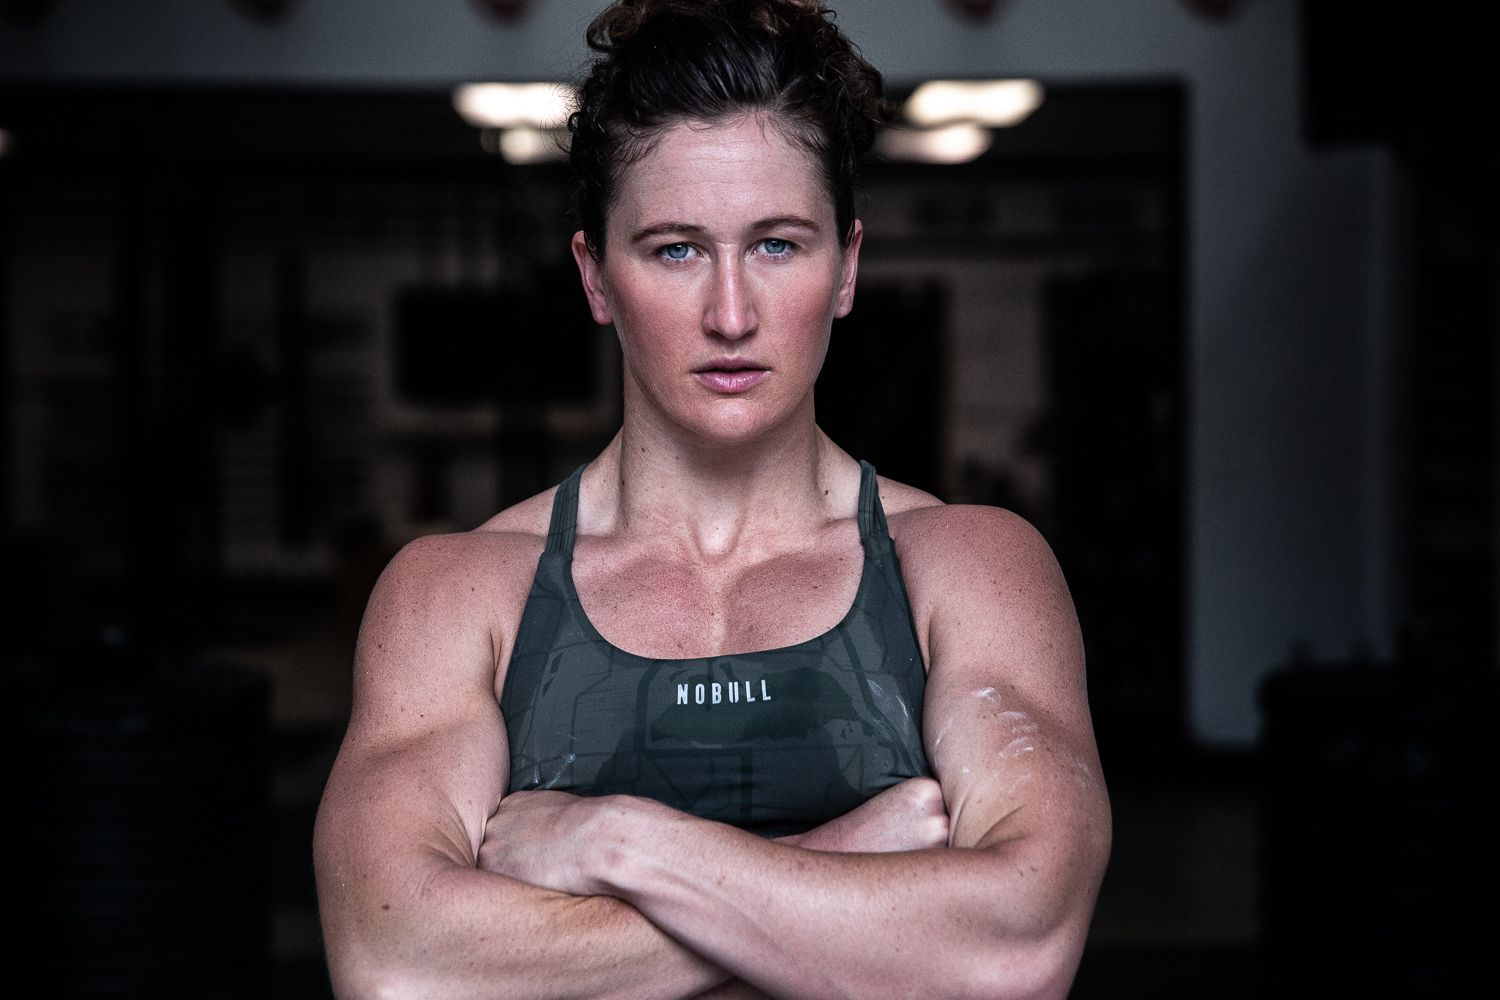 What CrossFit's 'Fittest Woman On Earth' Tia-Clair Toomey Eats In A Day